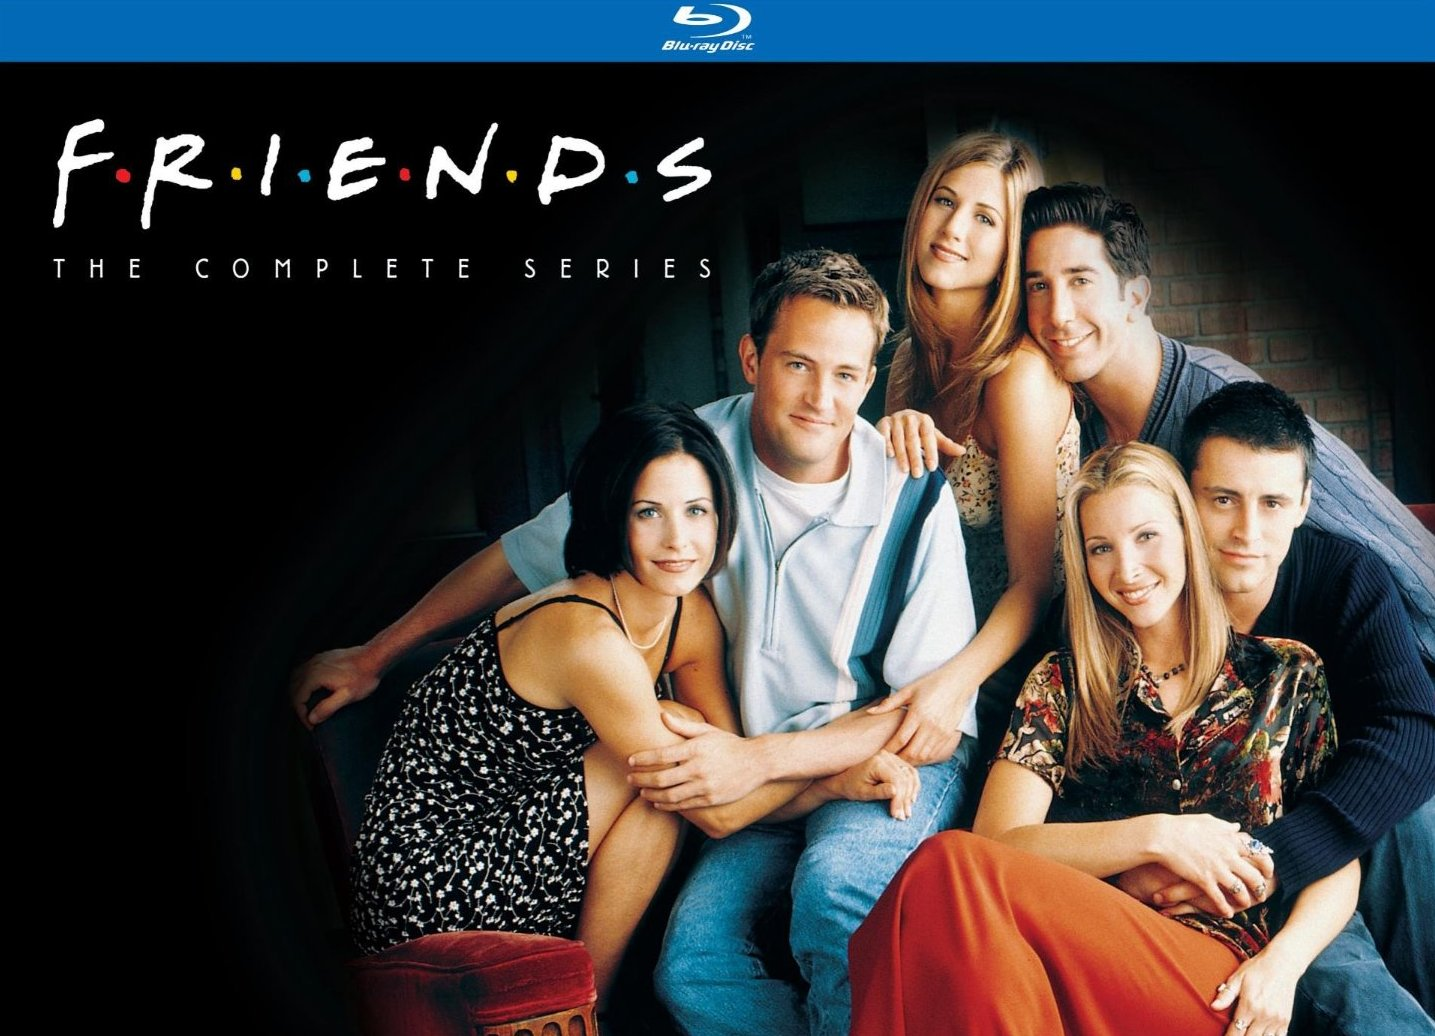 FRIENDS Stream Online, DVD and Cable Channels